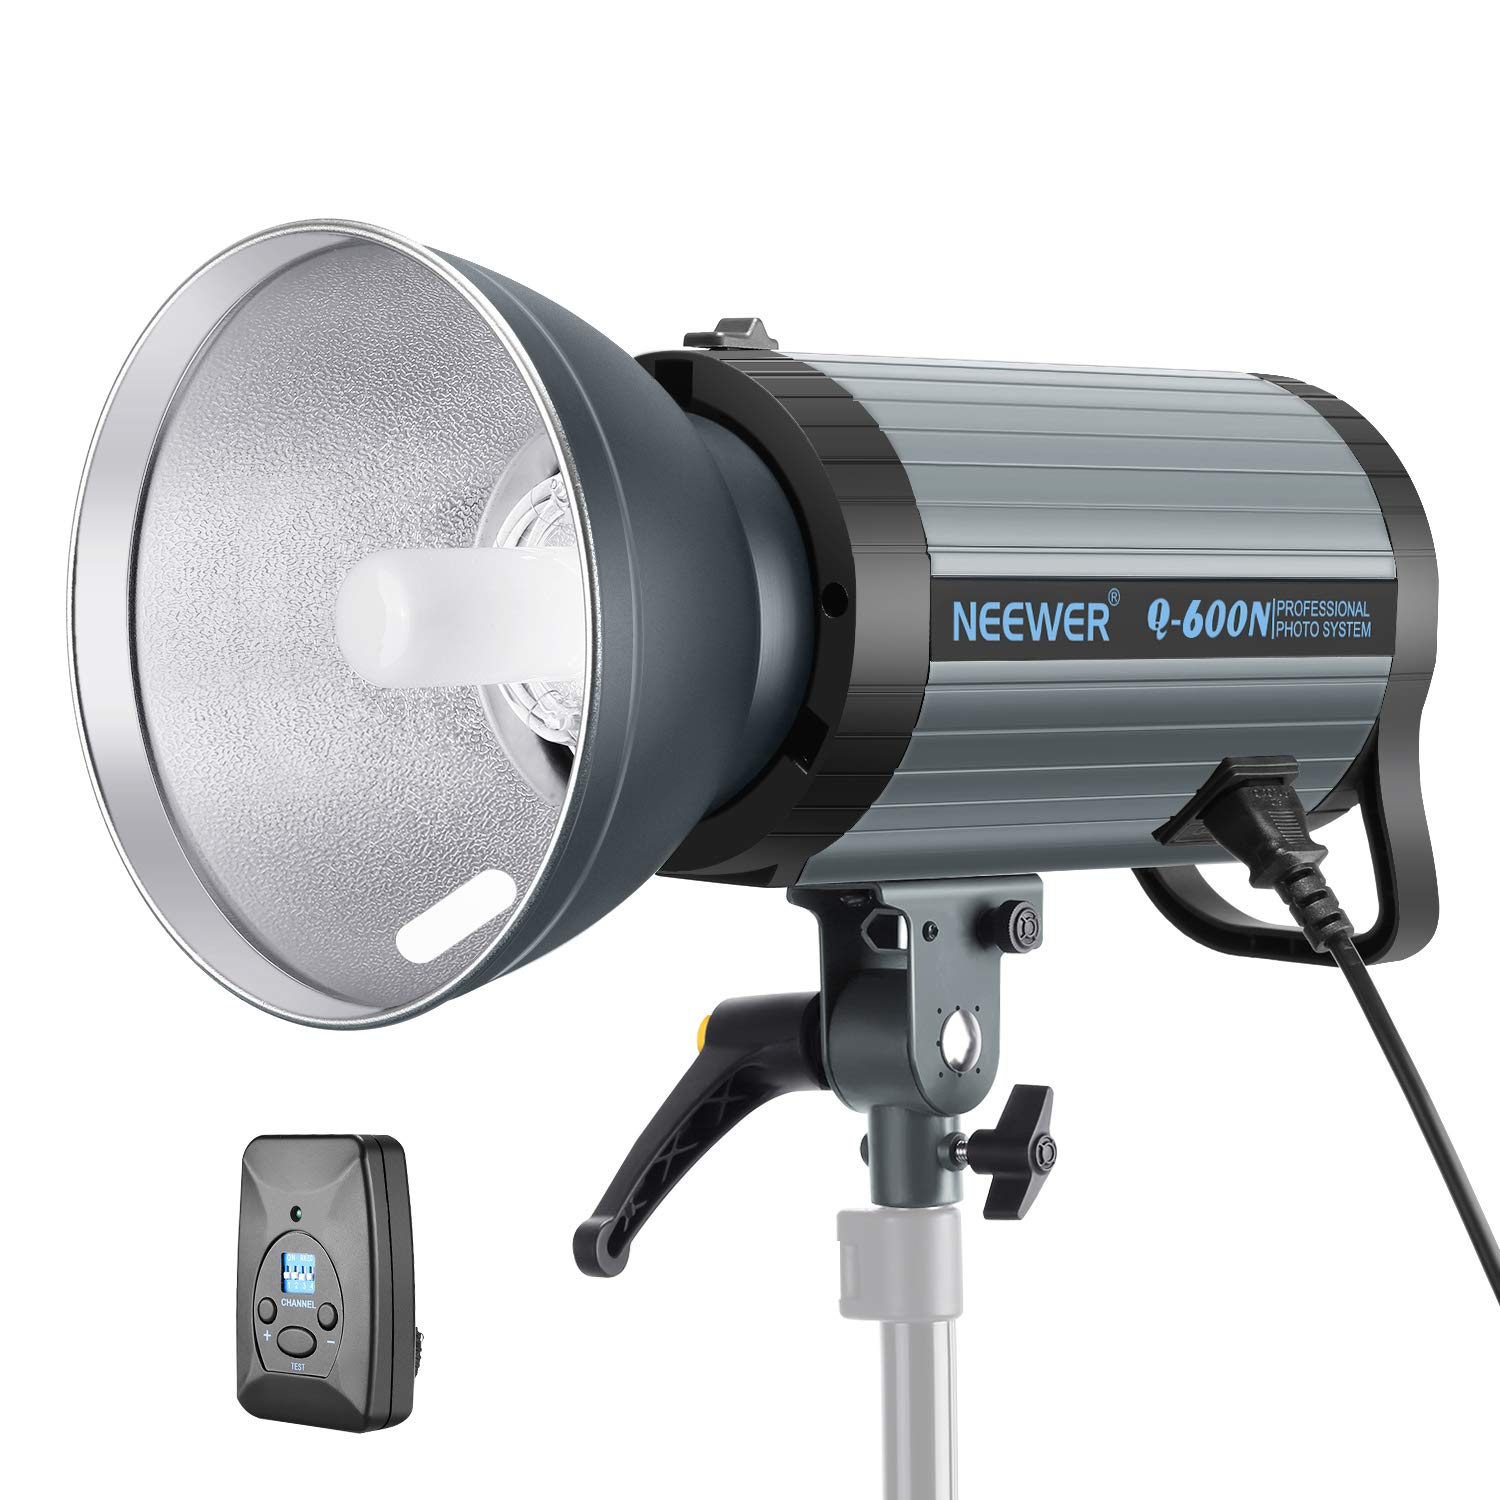 Neewer 600W GN82 Studio Flash Strobe Light Monolight with 2.4G Wireless Trigger and Modeling Lamp, Recycle in 0.01-1.2 Sec, Bowens Mount for Indoor Studio Portrait Photography(Q600N) by Neewer